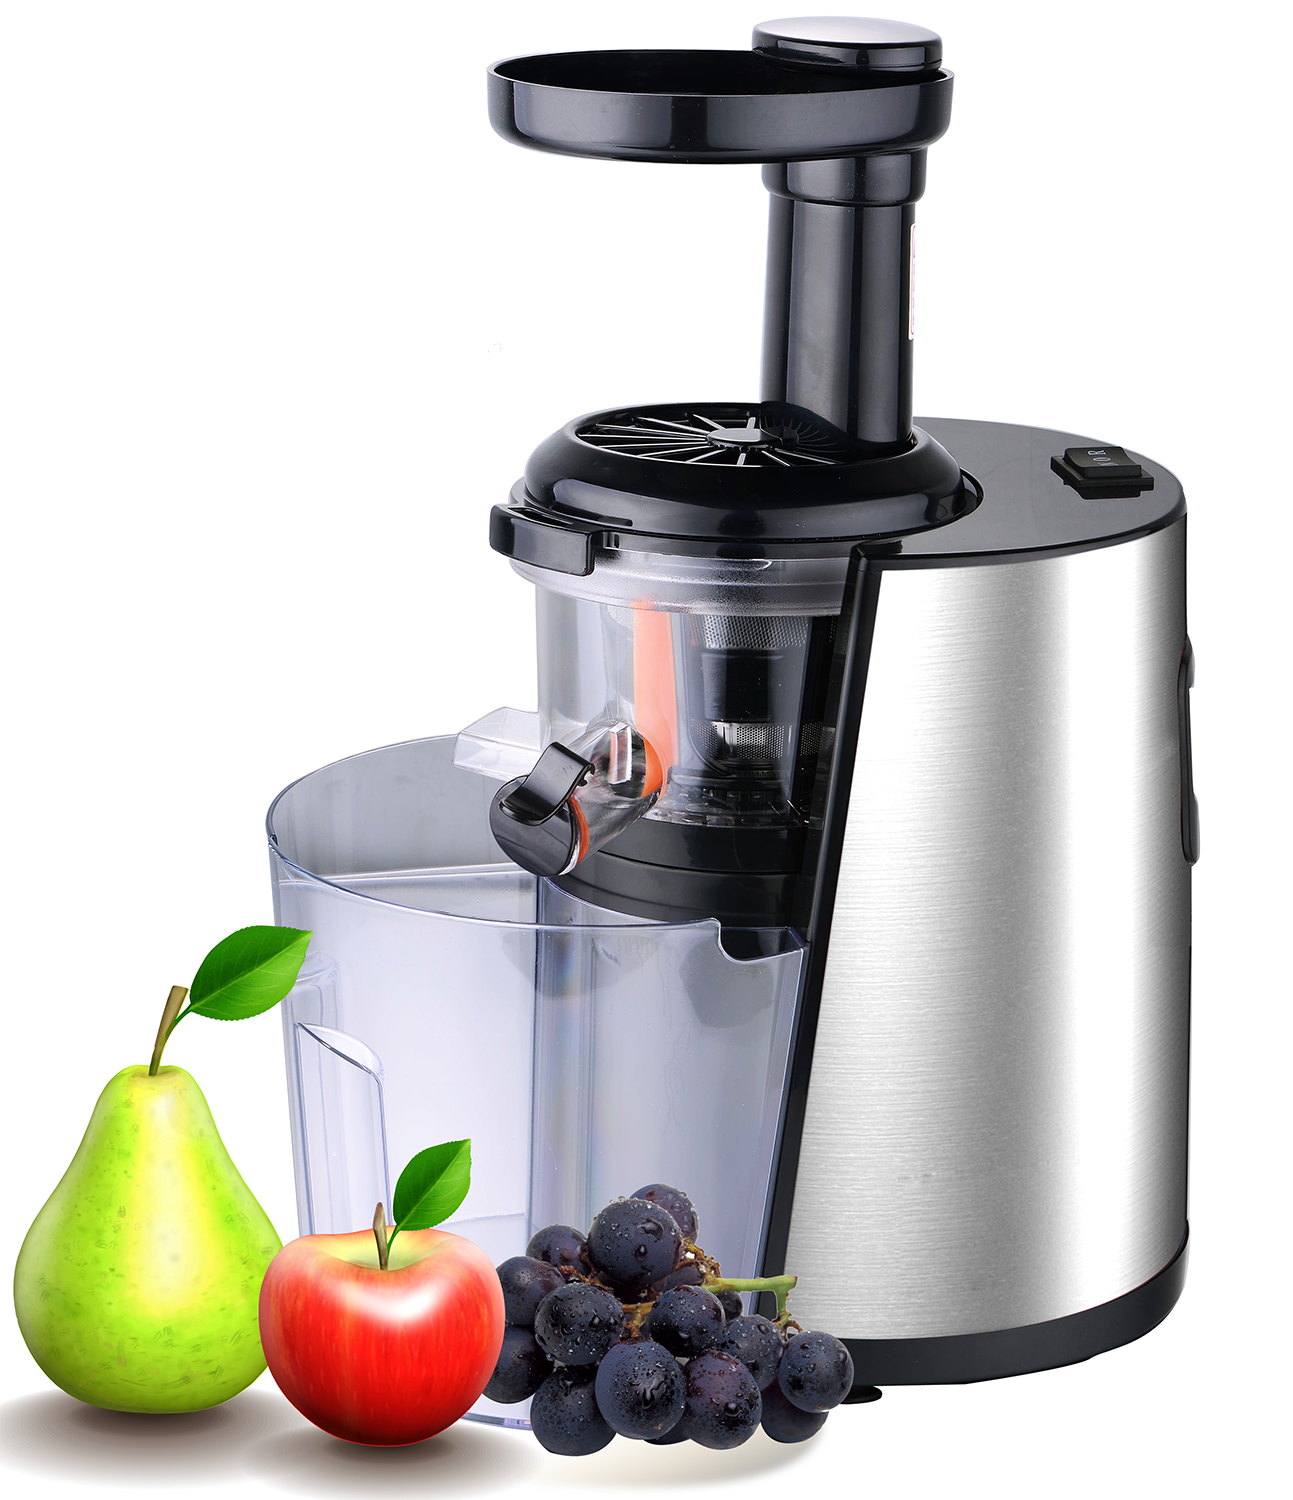 Slow Juicer Oranges : vivo Pure Ultra Silent Slow Fruit Juicer Easy Clean High Yield Dual Stage eBay